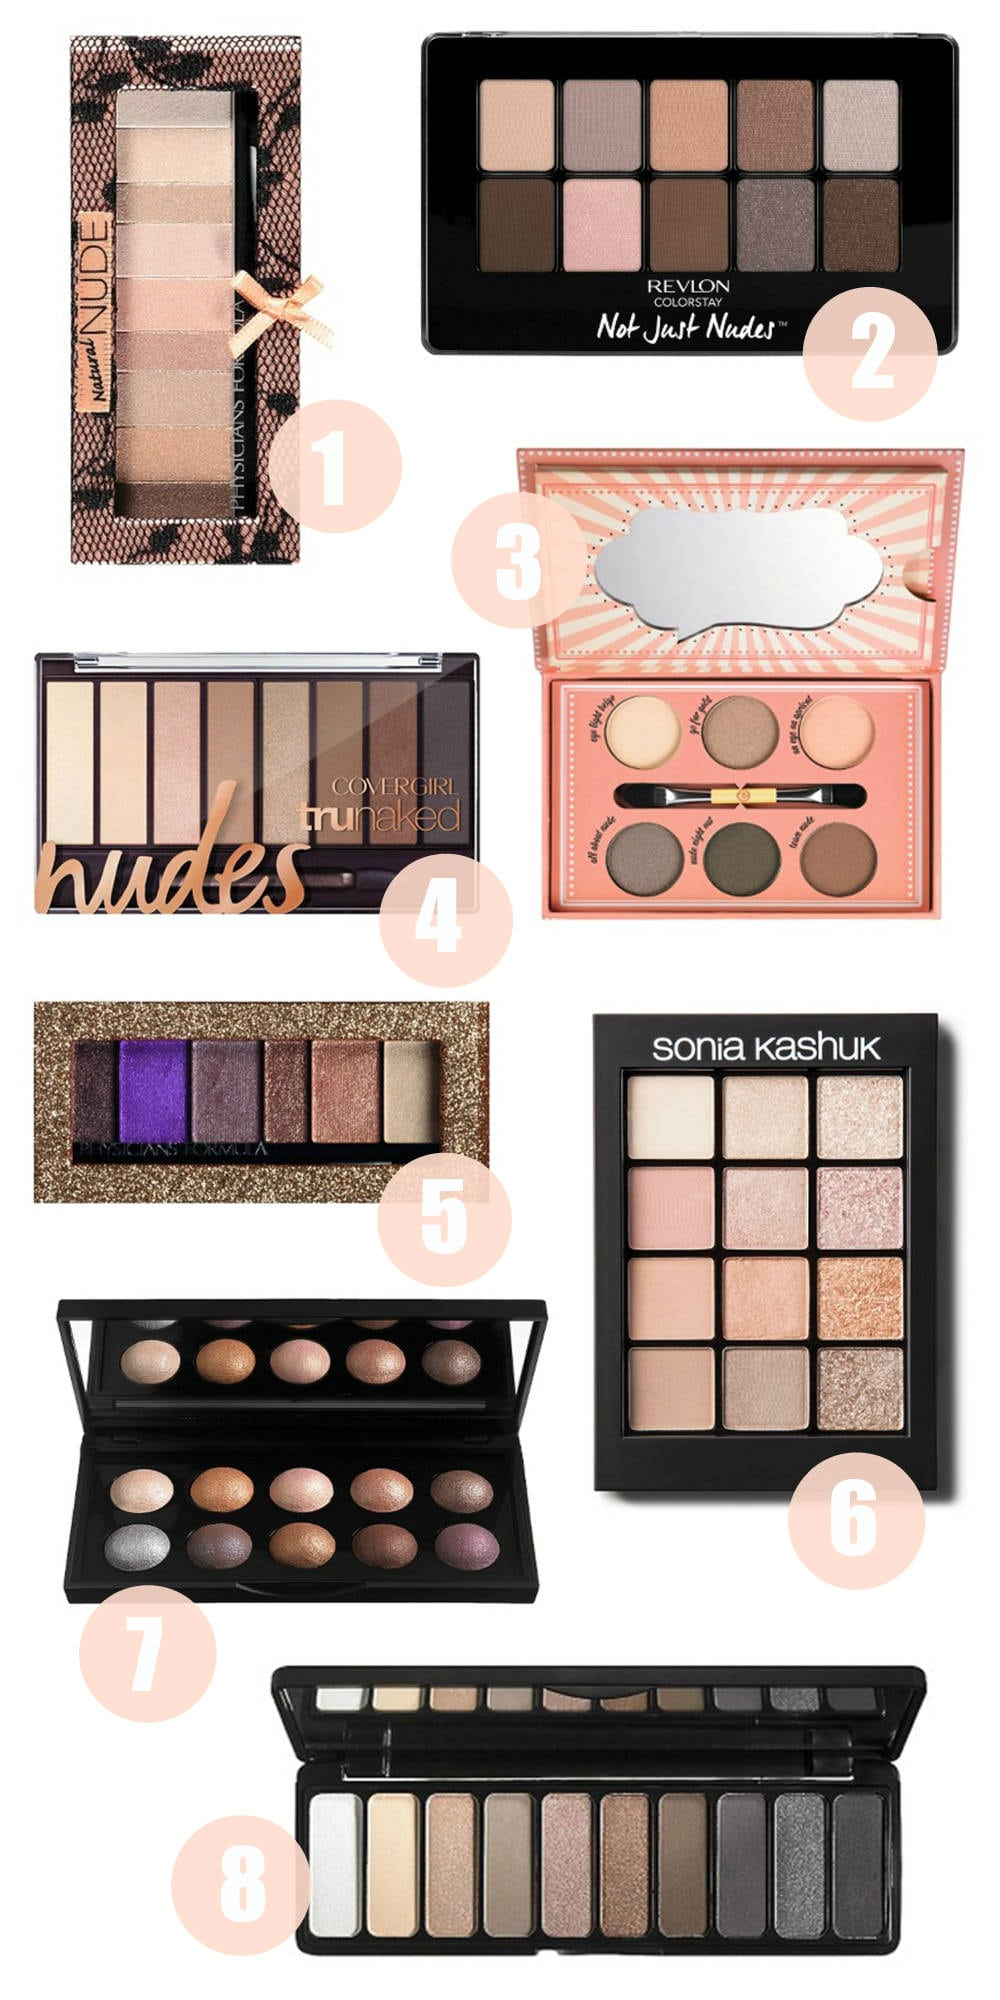 The Best Drugstore Eyeshadow Palettes Under $20